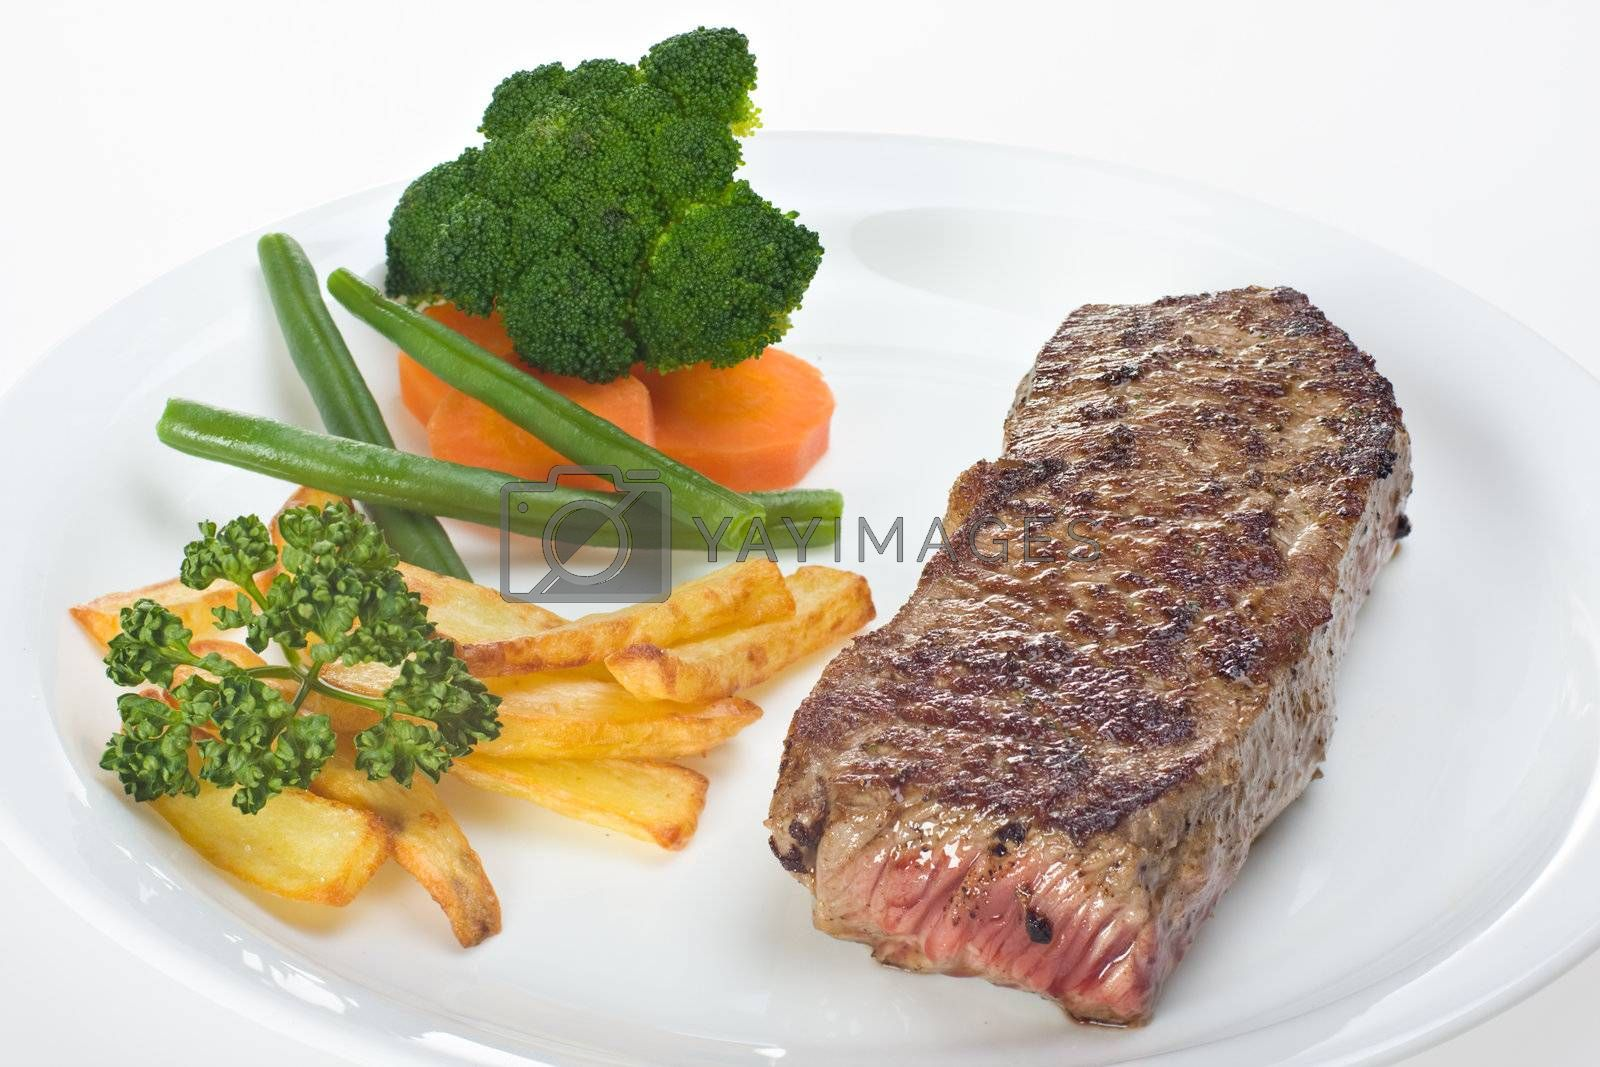 Royalty free image of grilled steak on a plate with fries by bernjuer